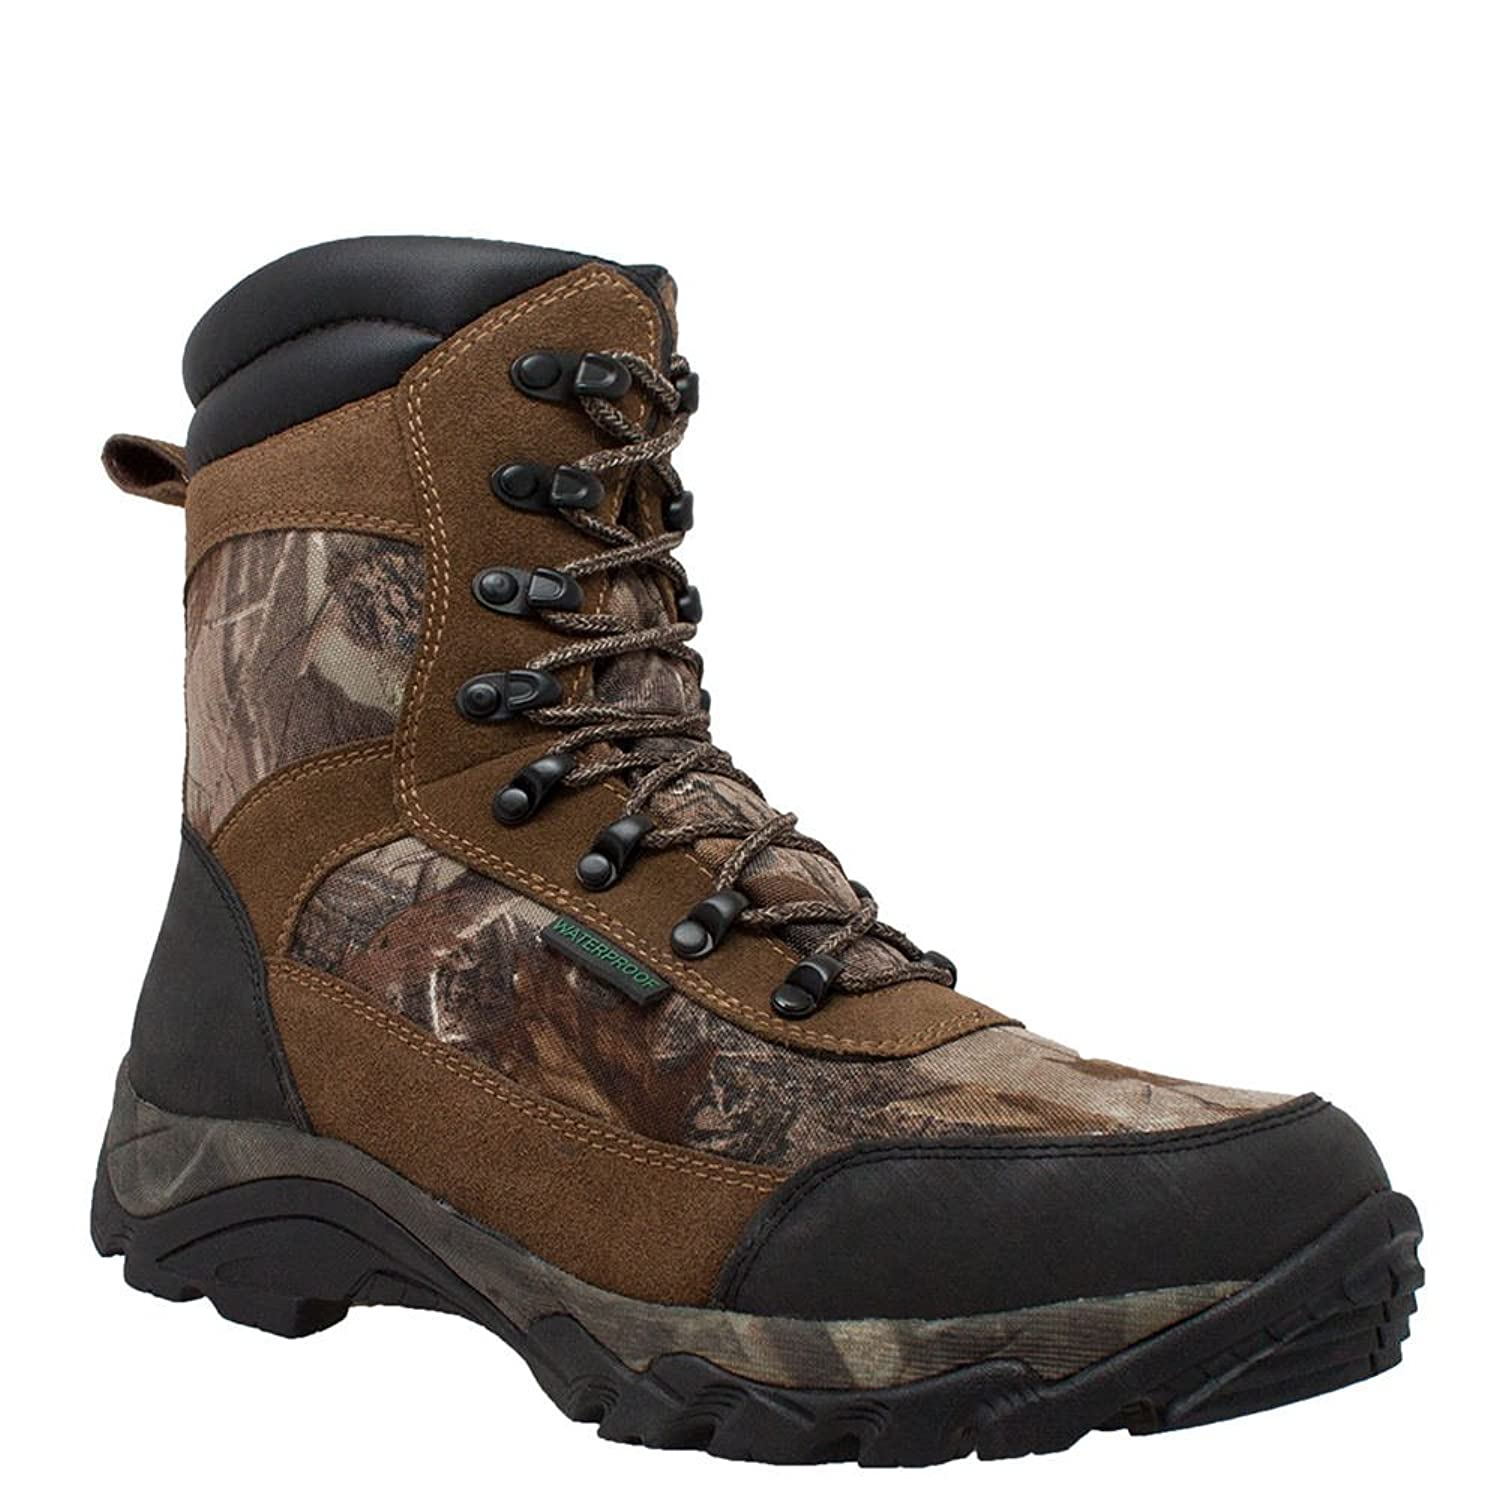 "AdTec 10"" Waterproof Real Tree 400G Men's Boot"